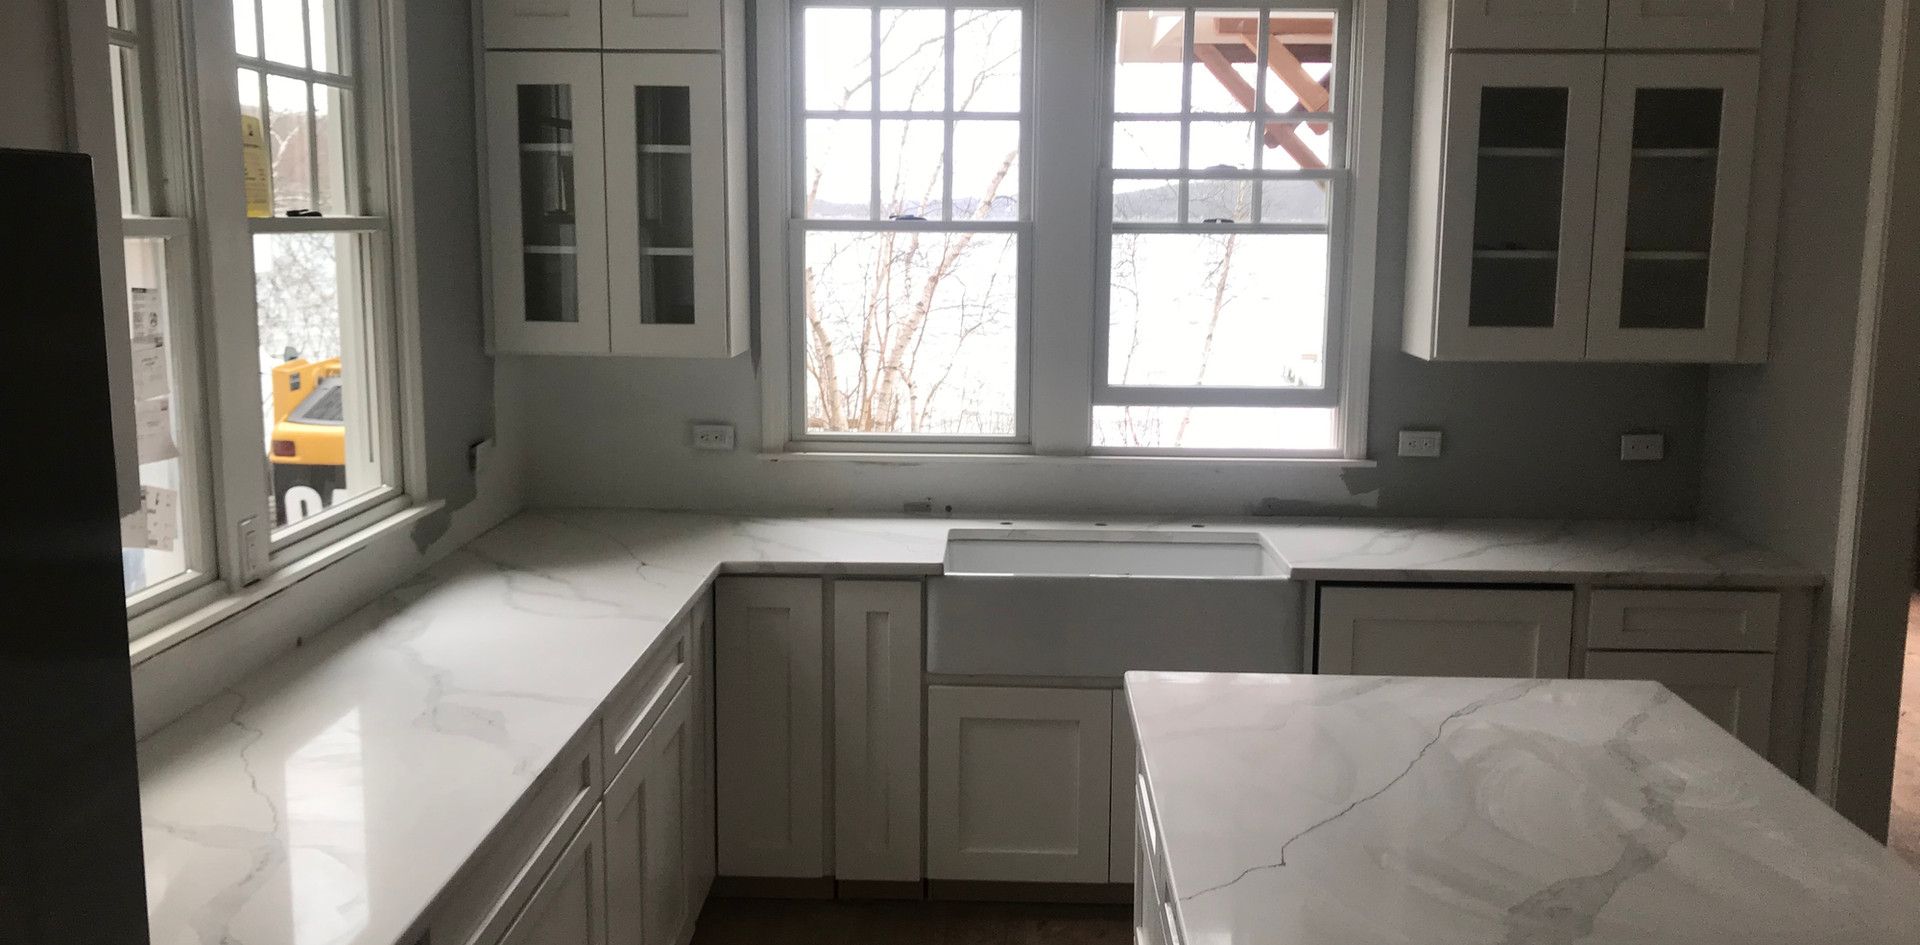 Modern Quartzite Kitchen Countertops,Oakland, NJ, Njcountertops.com